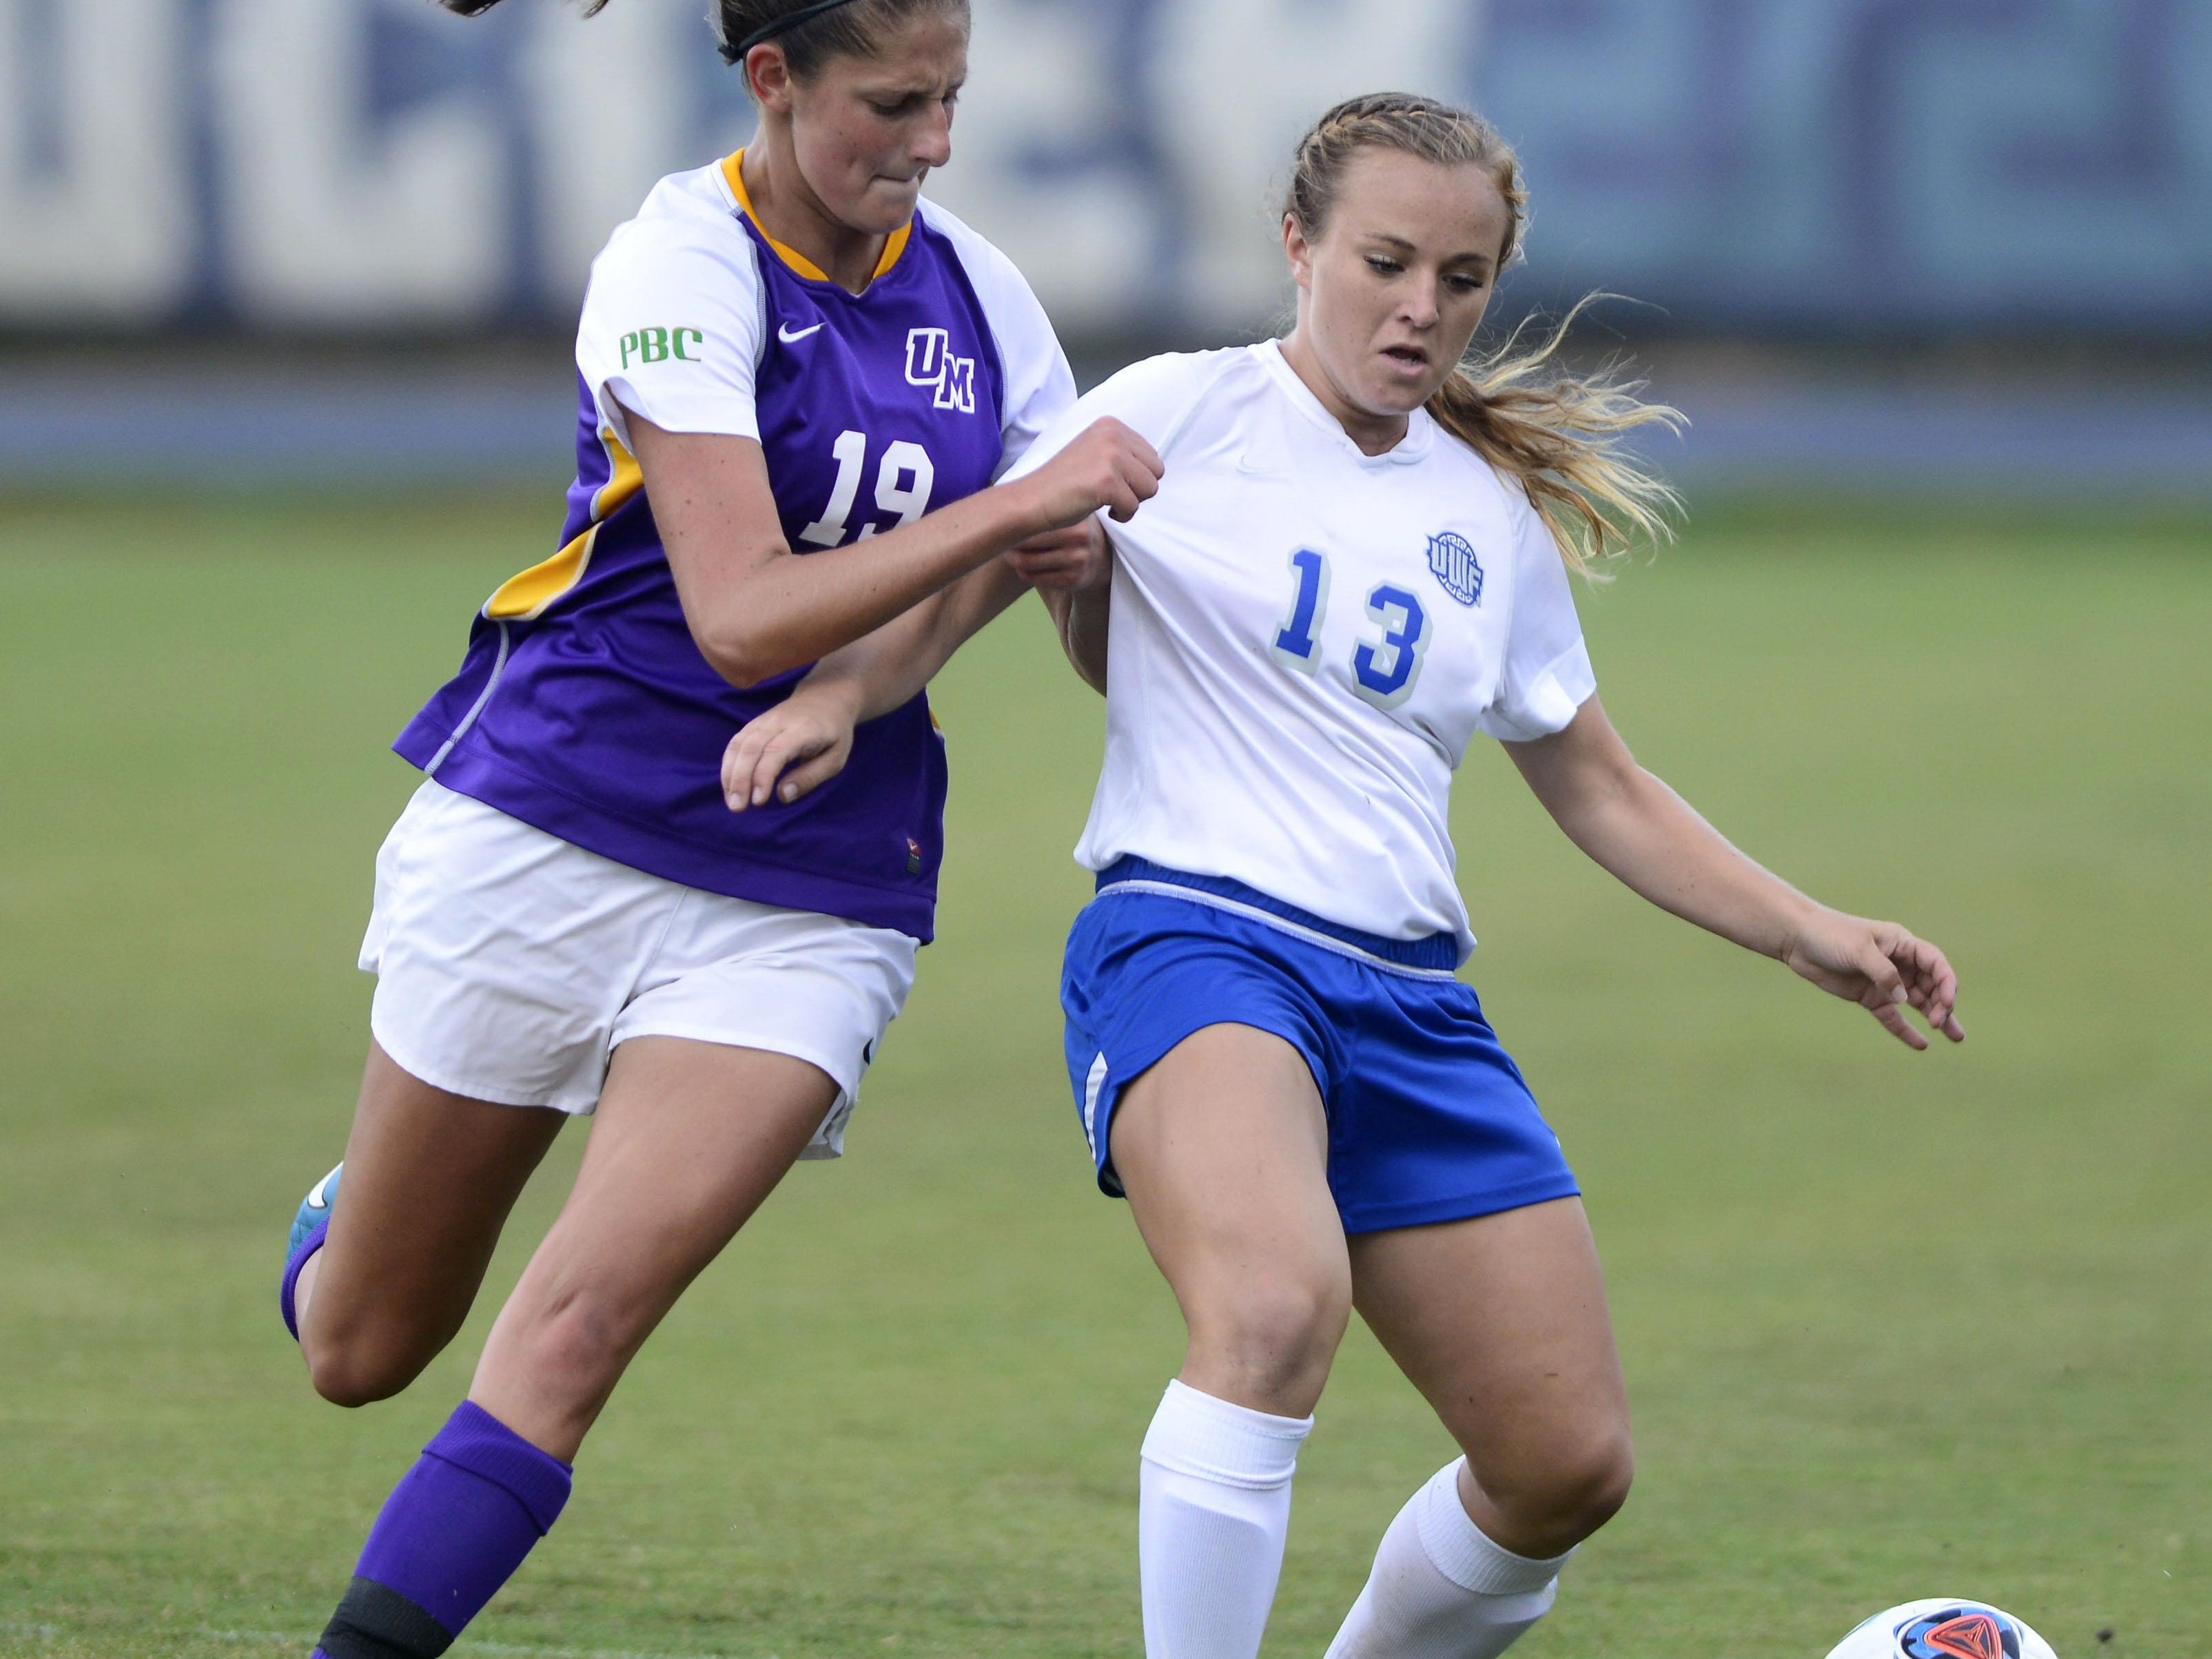 University of West Florida's Bri Young battels Montevallo's Michaela Graber on Tuesday at UWF soccer complex.